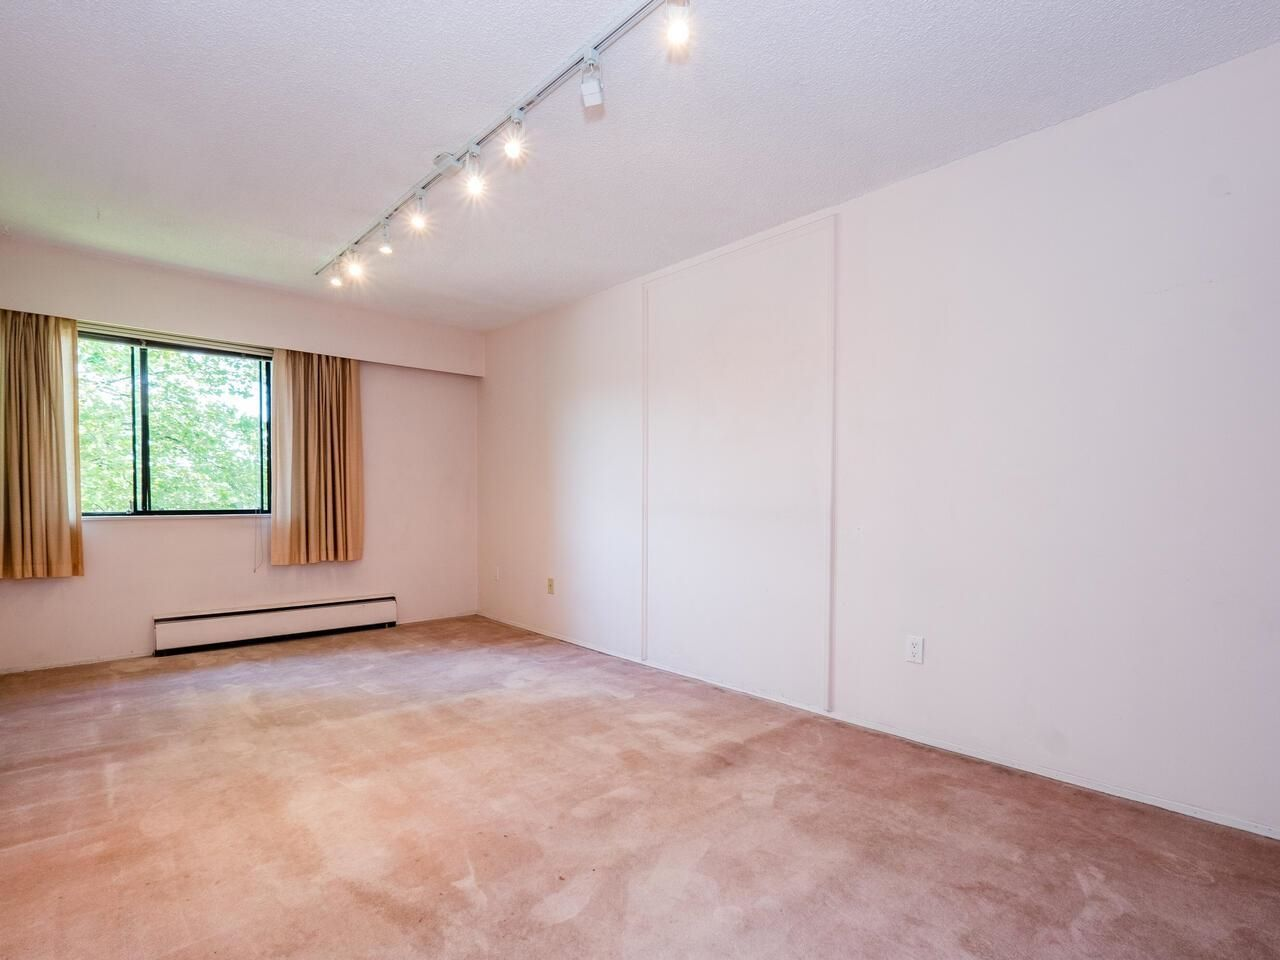 """Photo 15: Photos: 209 2600 E 49TH Avenue in Vancouver: Killarney VE Condo for sale in """"Southwinds"""" (Vancouver East)  : MLS®# R2600173"""